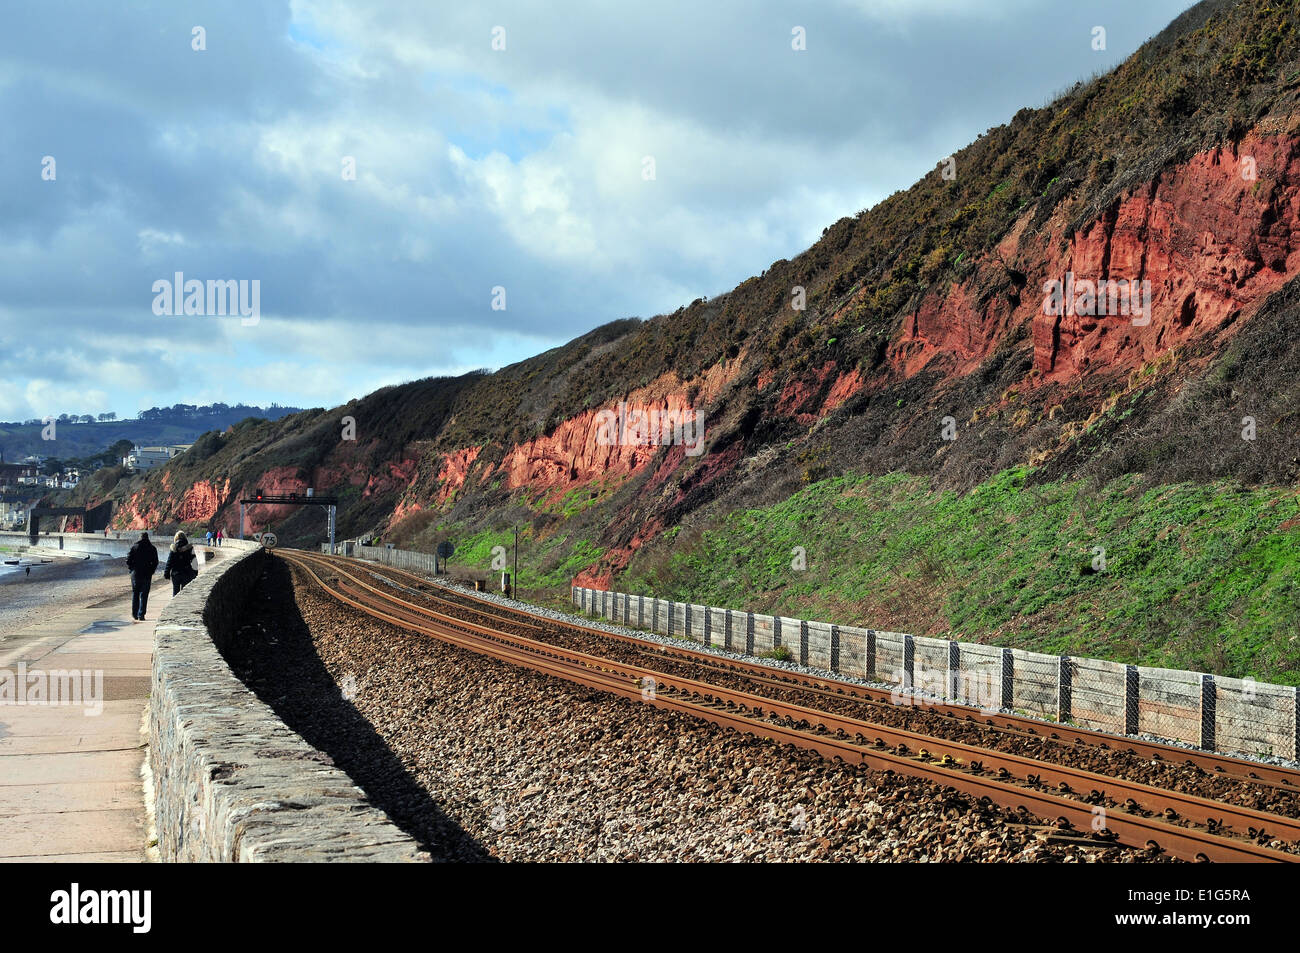 A cliff section of Old Red Sandstone near, Dawlish, South Devon - showing Devonian stratigraphy and the railway line. - Stock Image